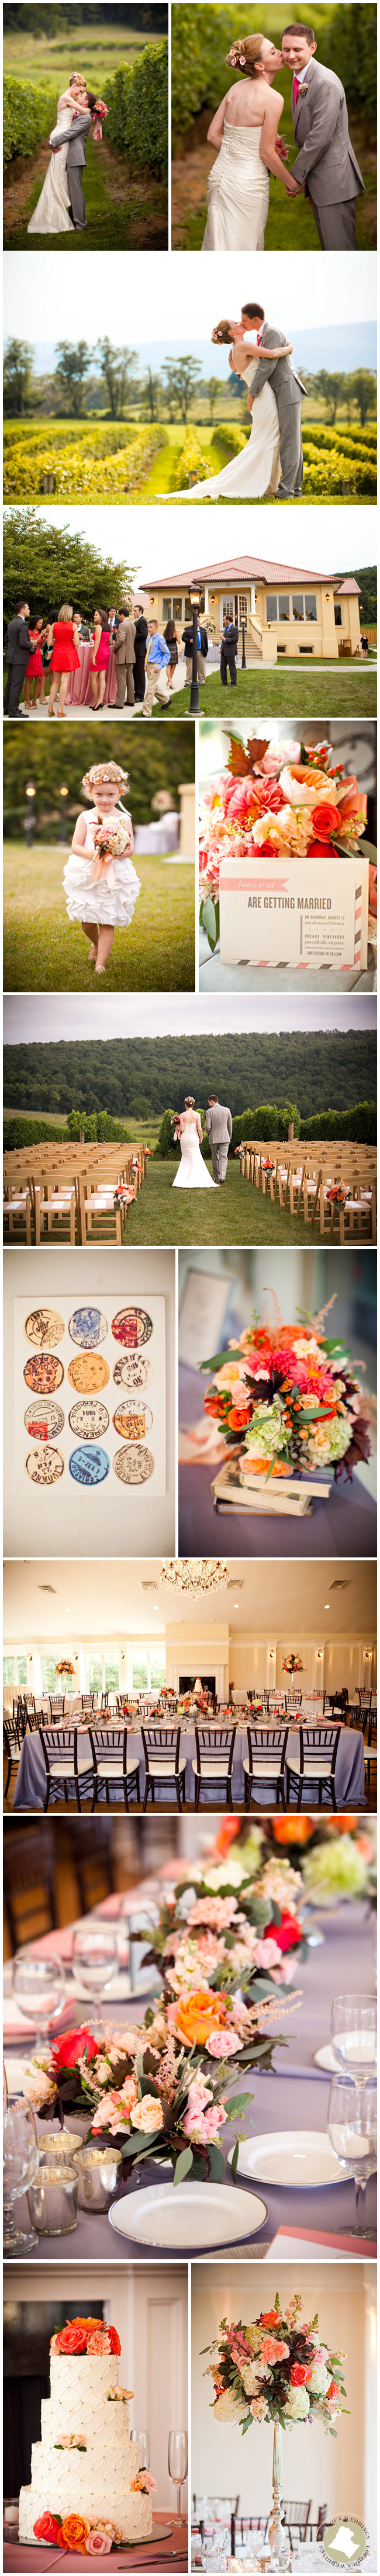 This coral, peach, pink and orange affair  contrasted beautifully with the green rolling hills of Breaux Vineyards.  Chic and sweet, this event boasted elevated floral arrangements, burgeoning bud vases and simple yet lovely pew markers for the ceremony.  Tableware and linens were expertly chosen to tie the florals in with the tables, chairs and space itself, creating an elegant and elevated ensemble.   Photos by Genevieve Leiper.